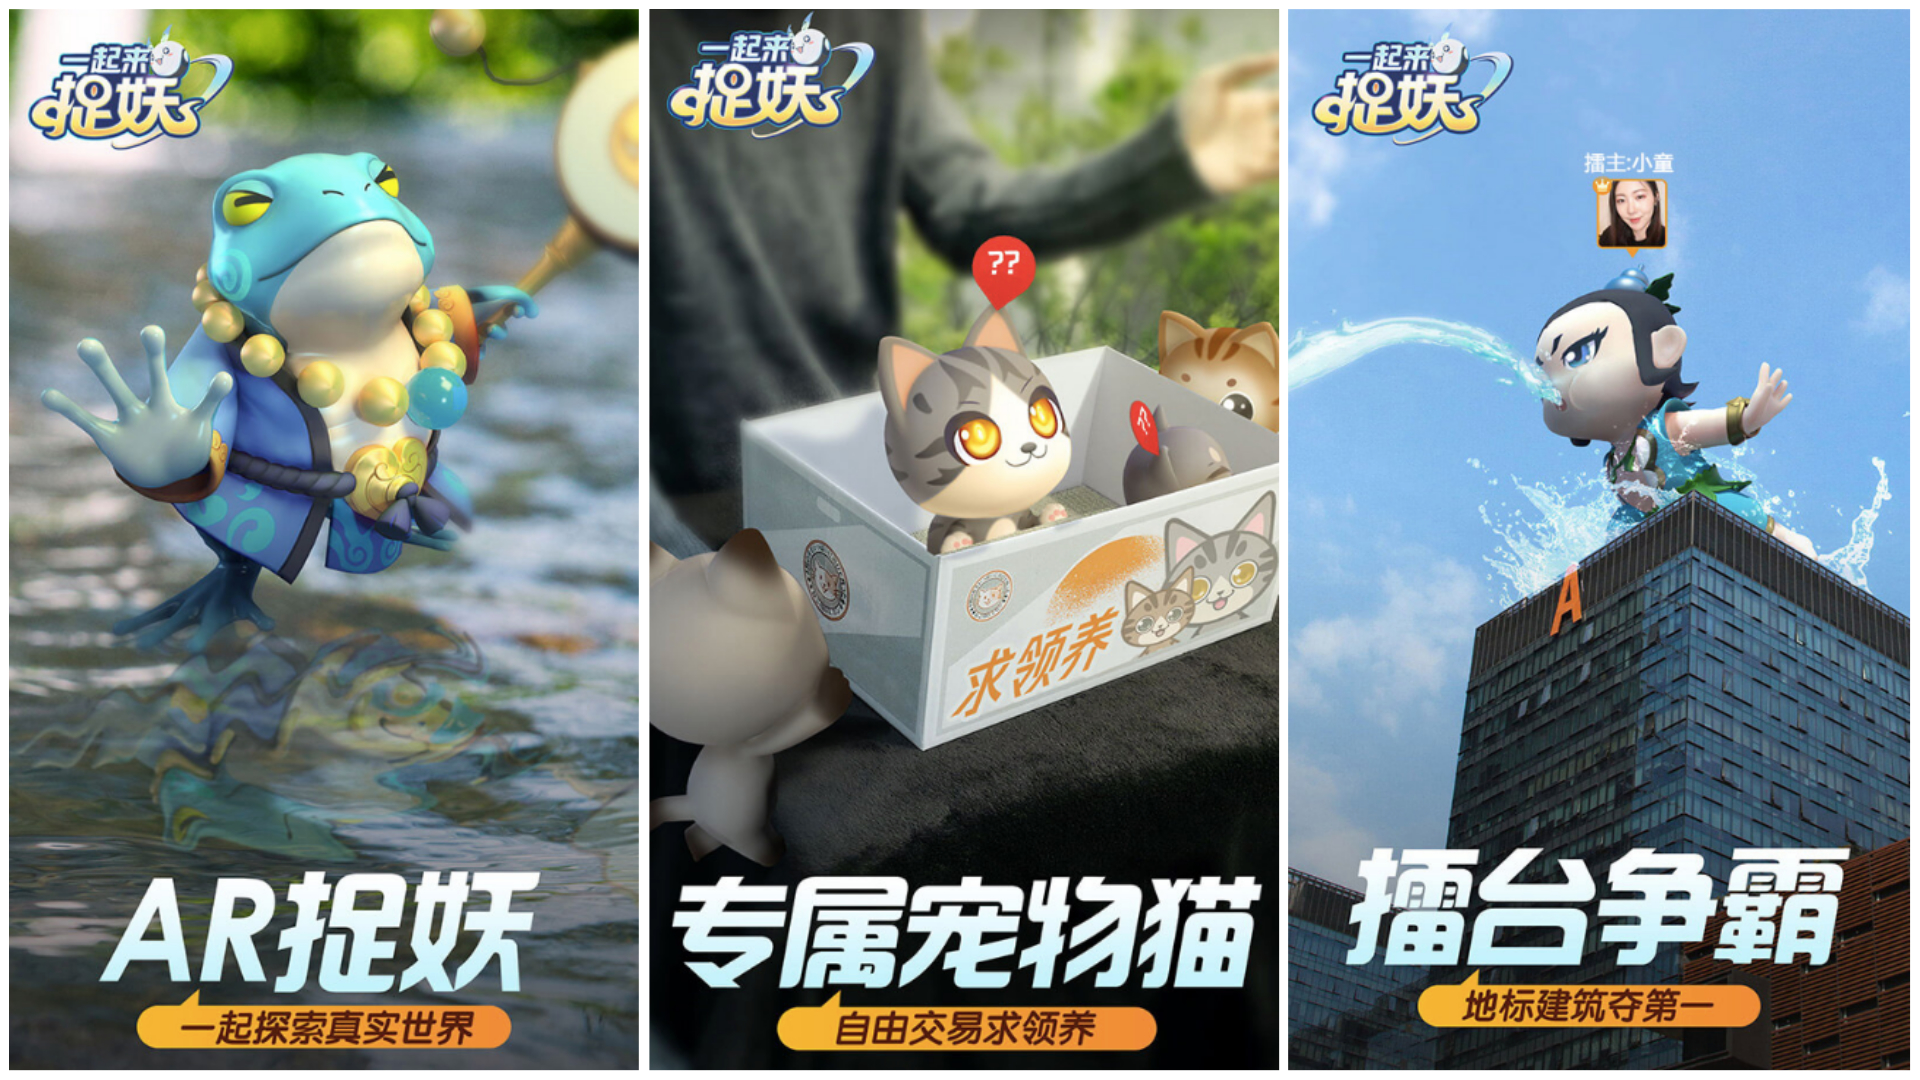 tencent lets hunt monsters feature image